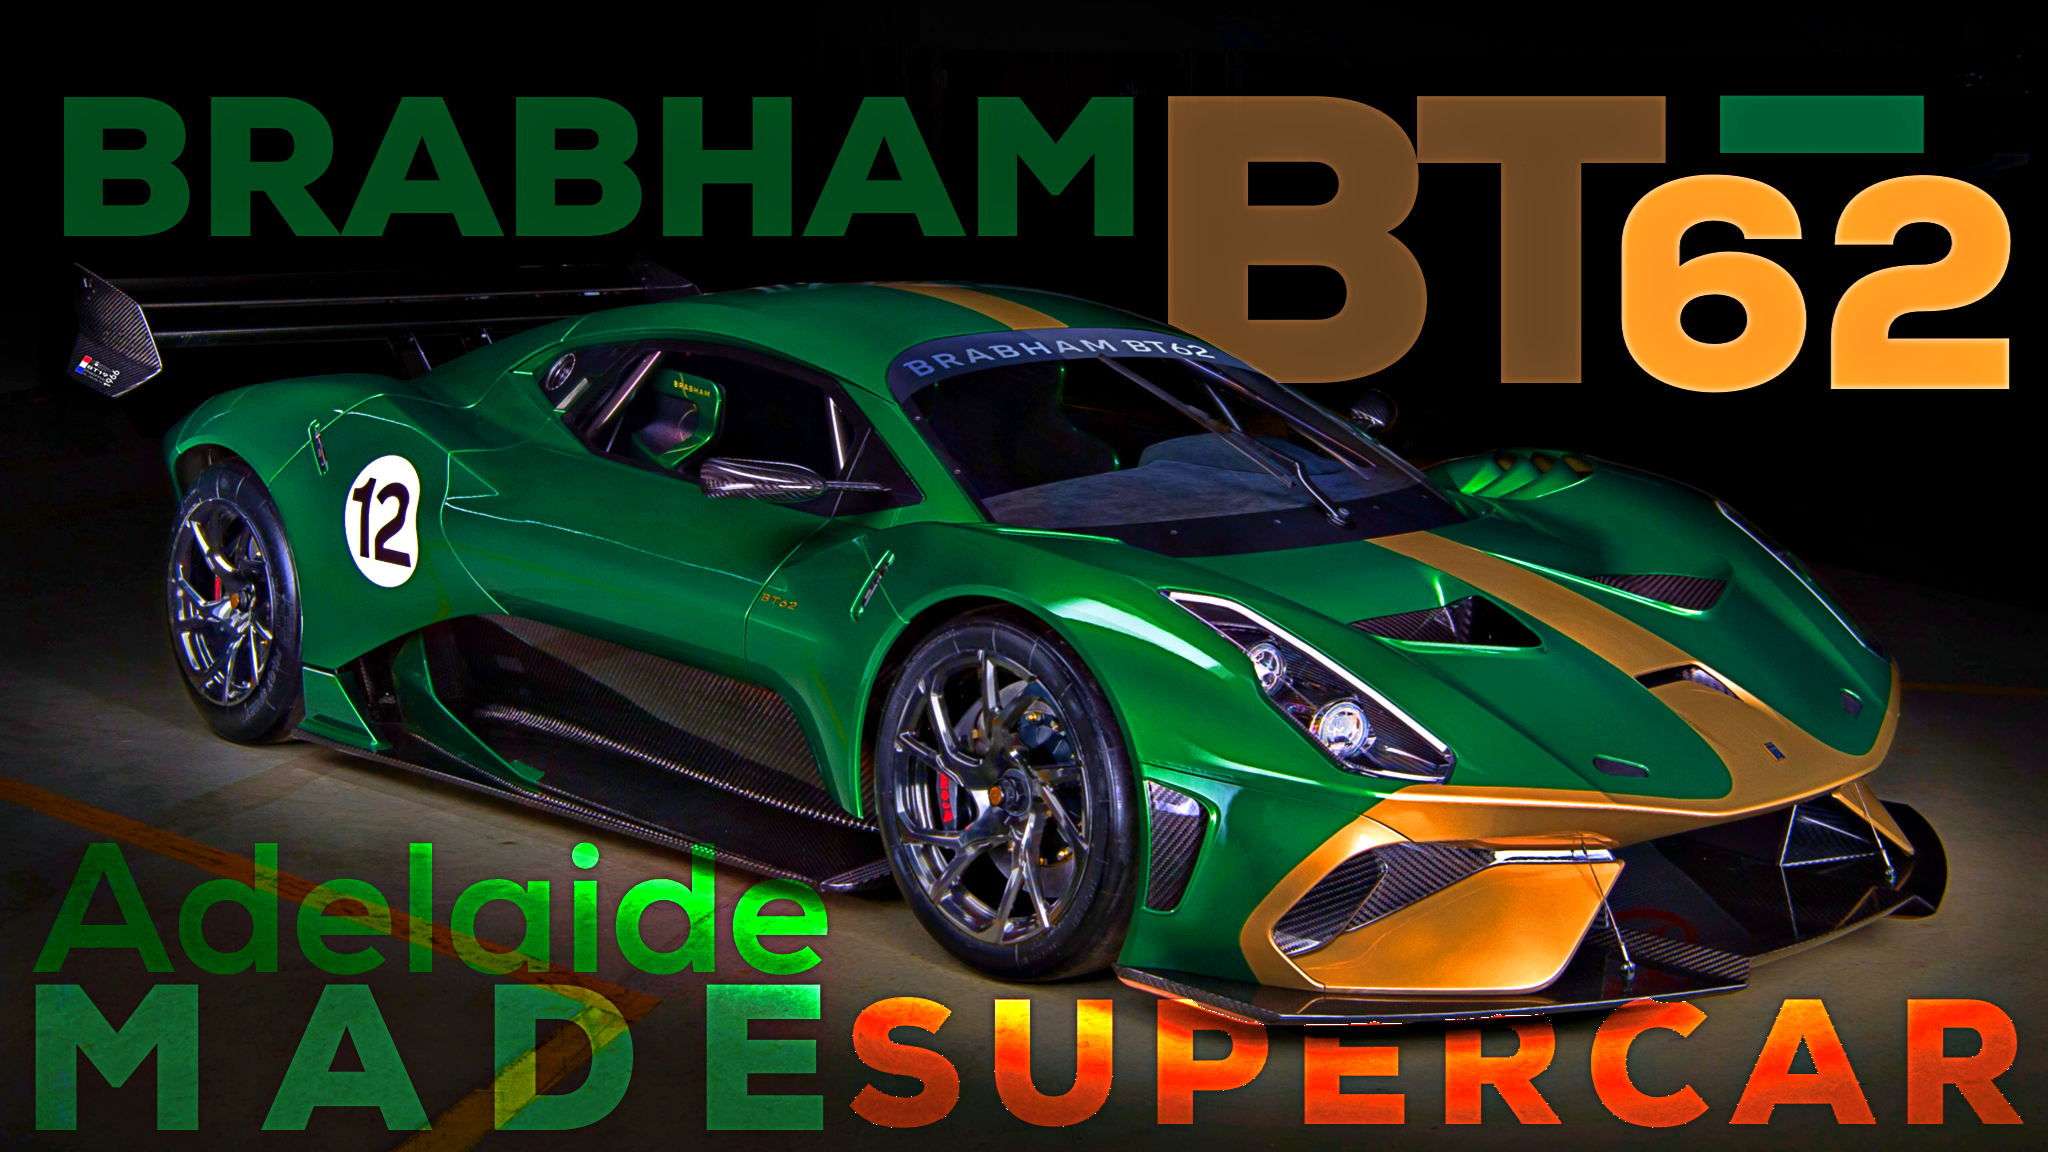 Brabham BT62 Track-Monster Is So Very Aussie